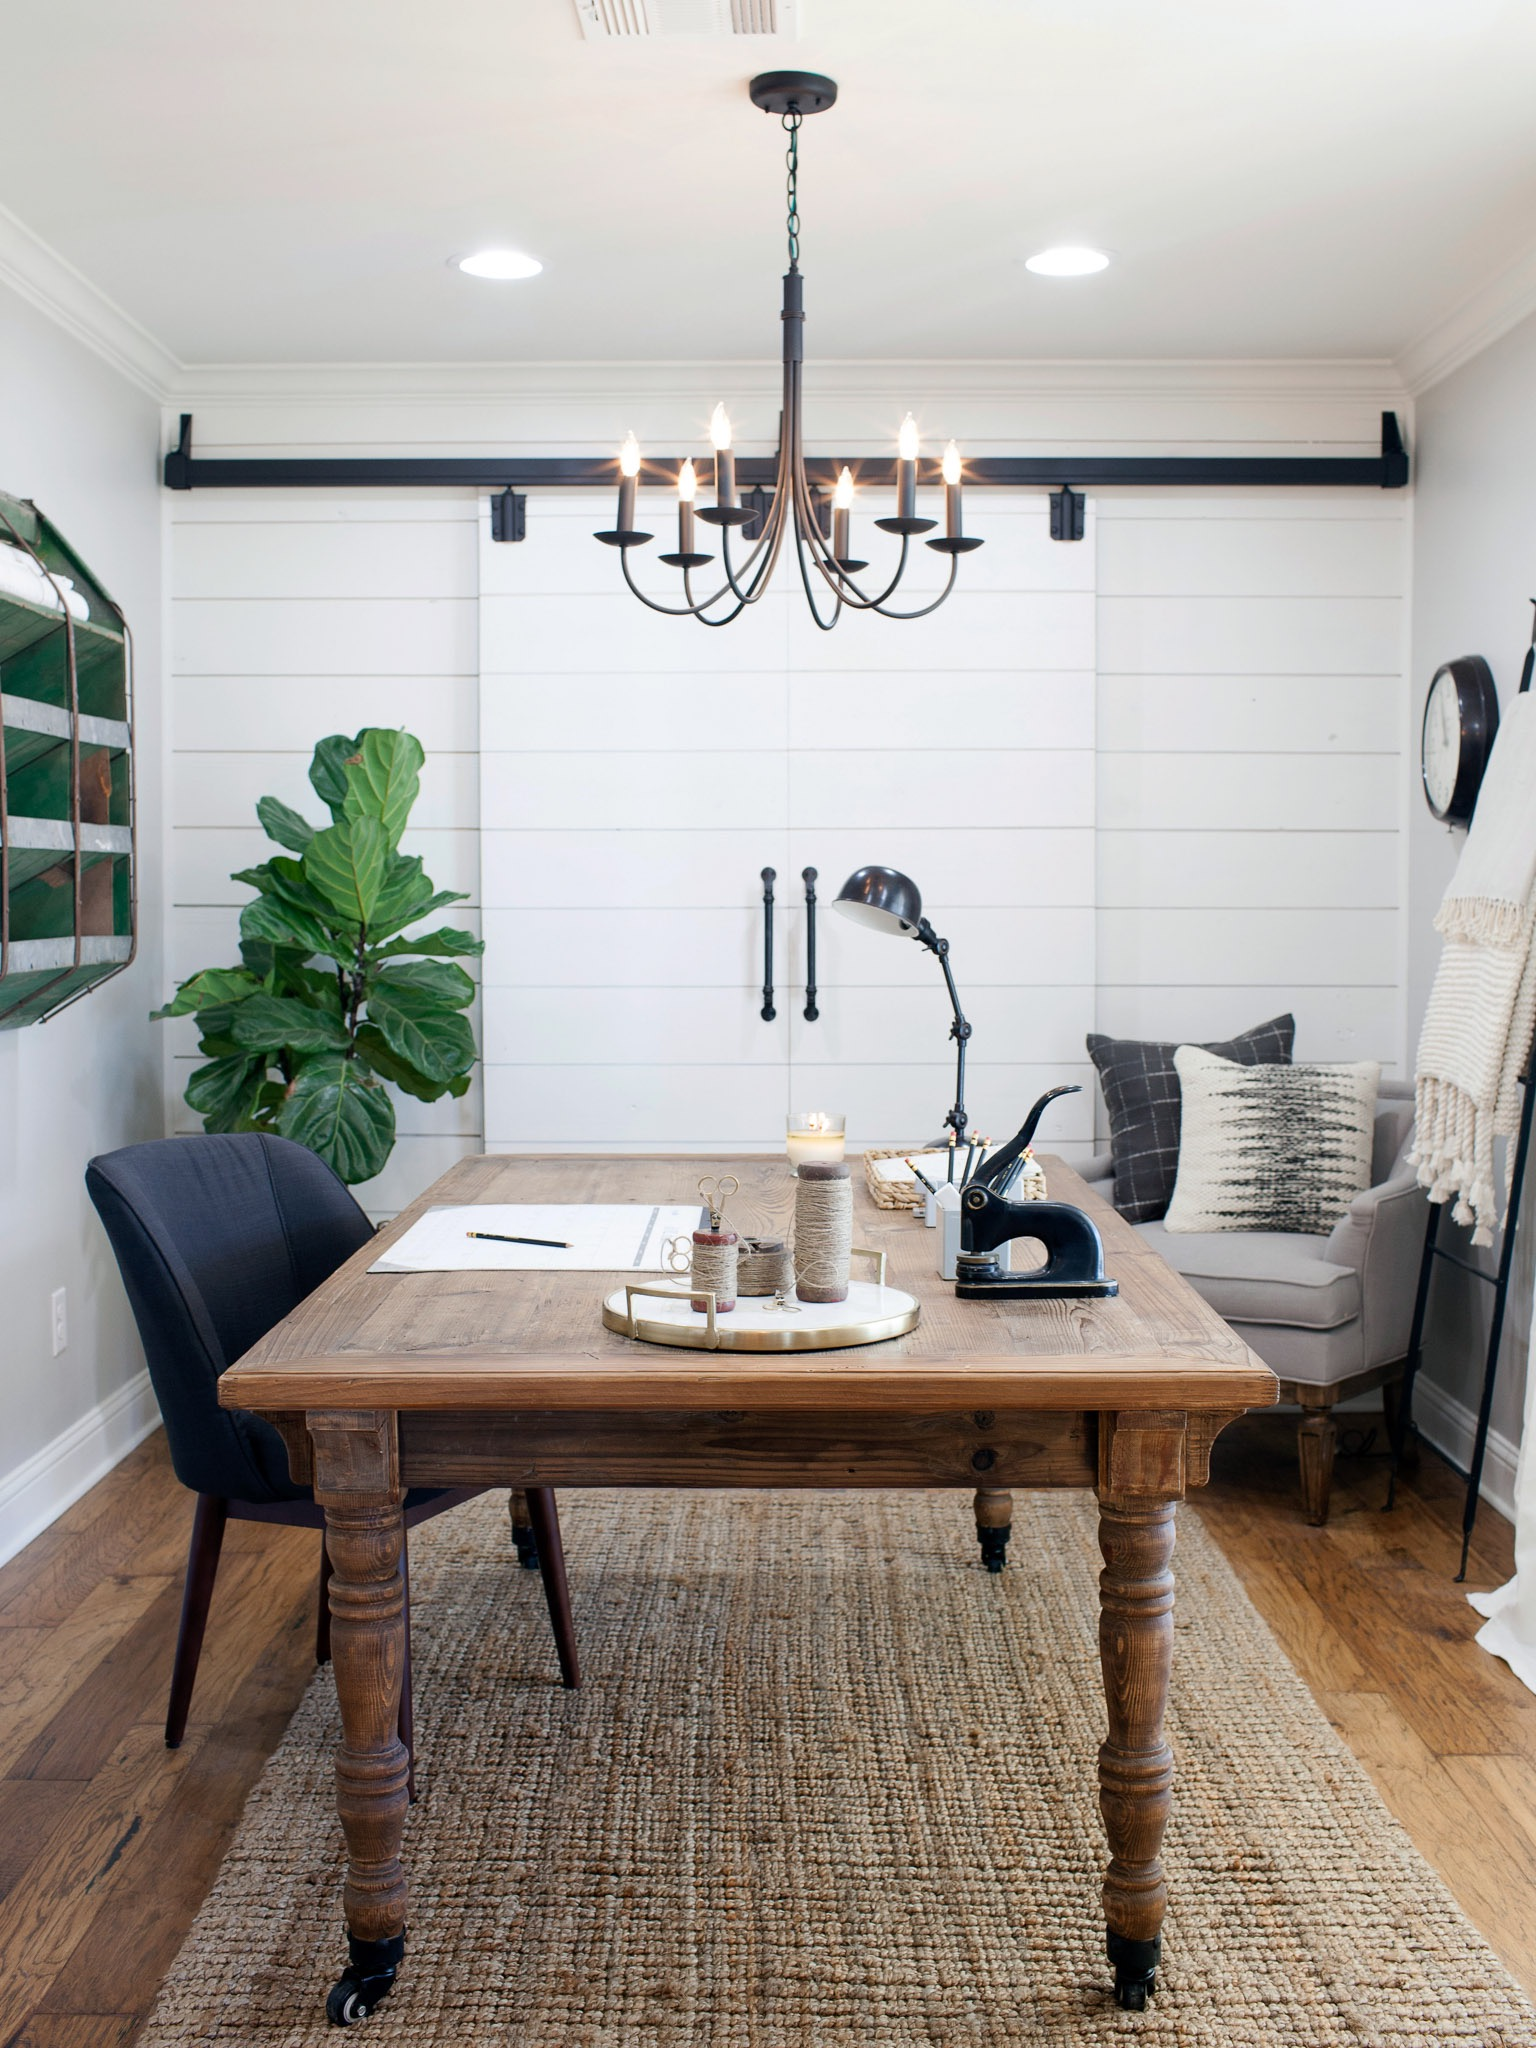 Rustic Home Office With Chandelier (Image 41 of 50)